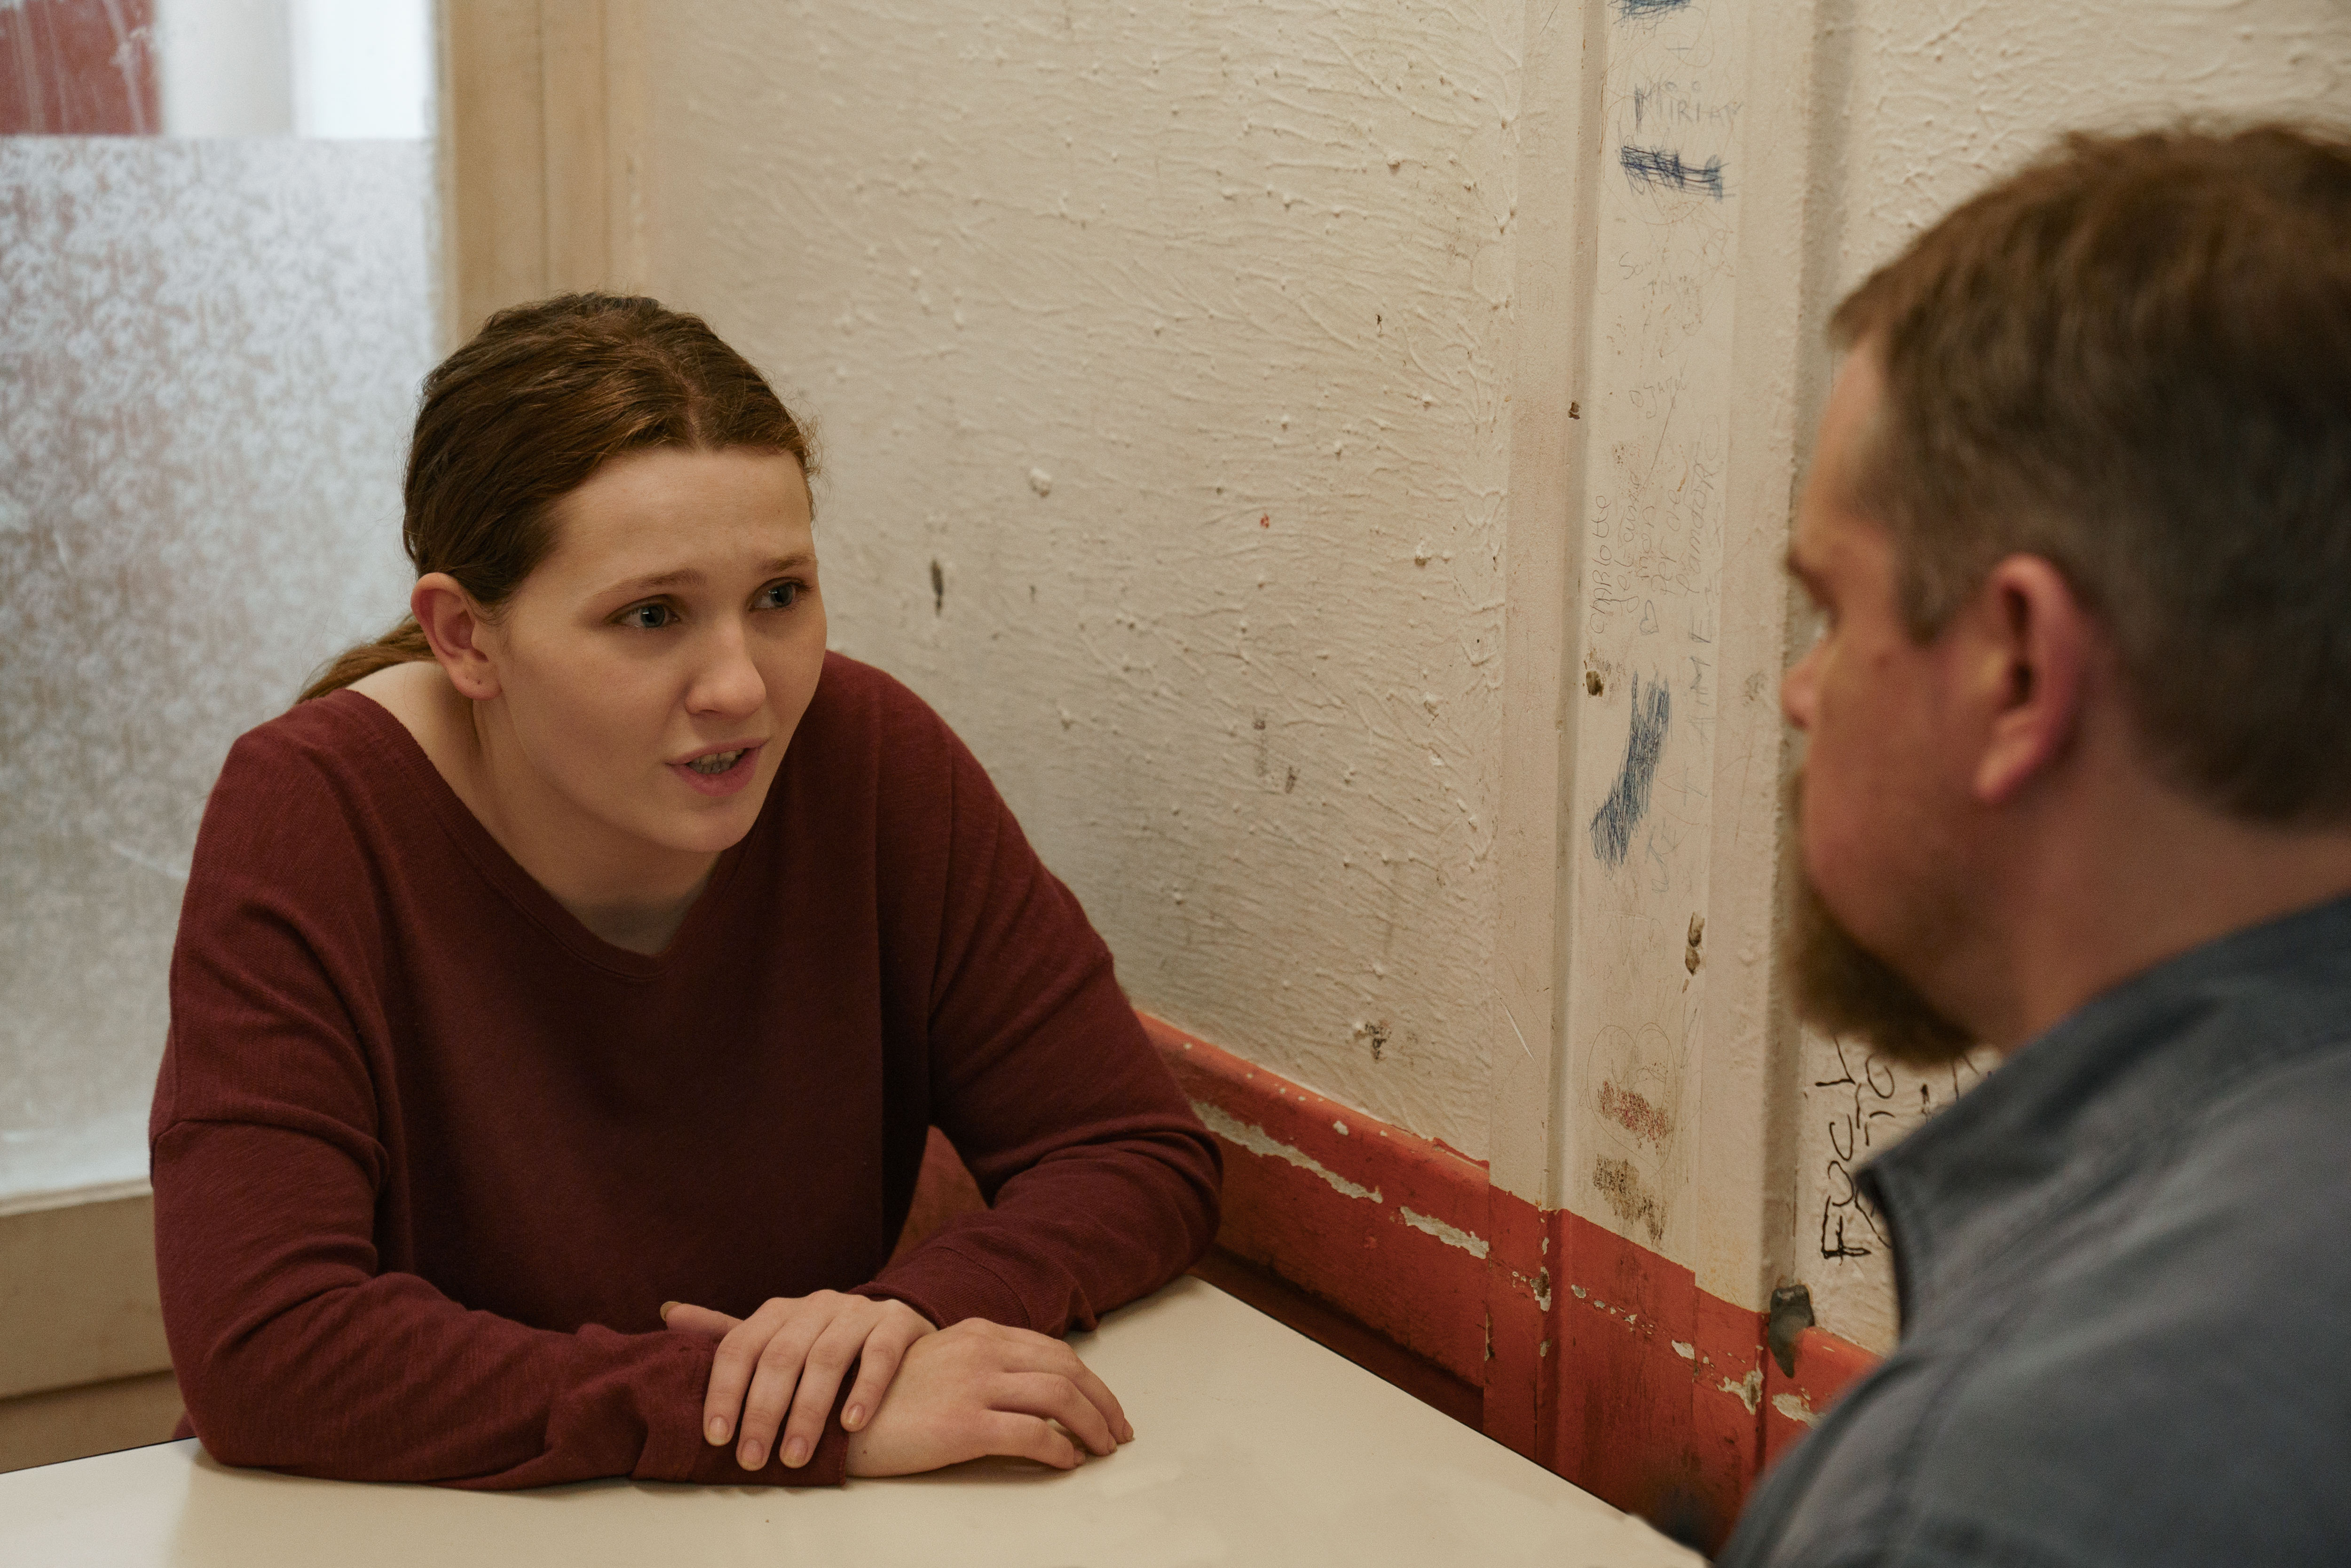 Abigail Breslin plays the daughter Matt Damon's Bill hopes to extract from a messy situation